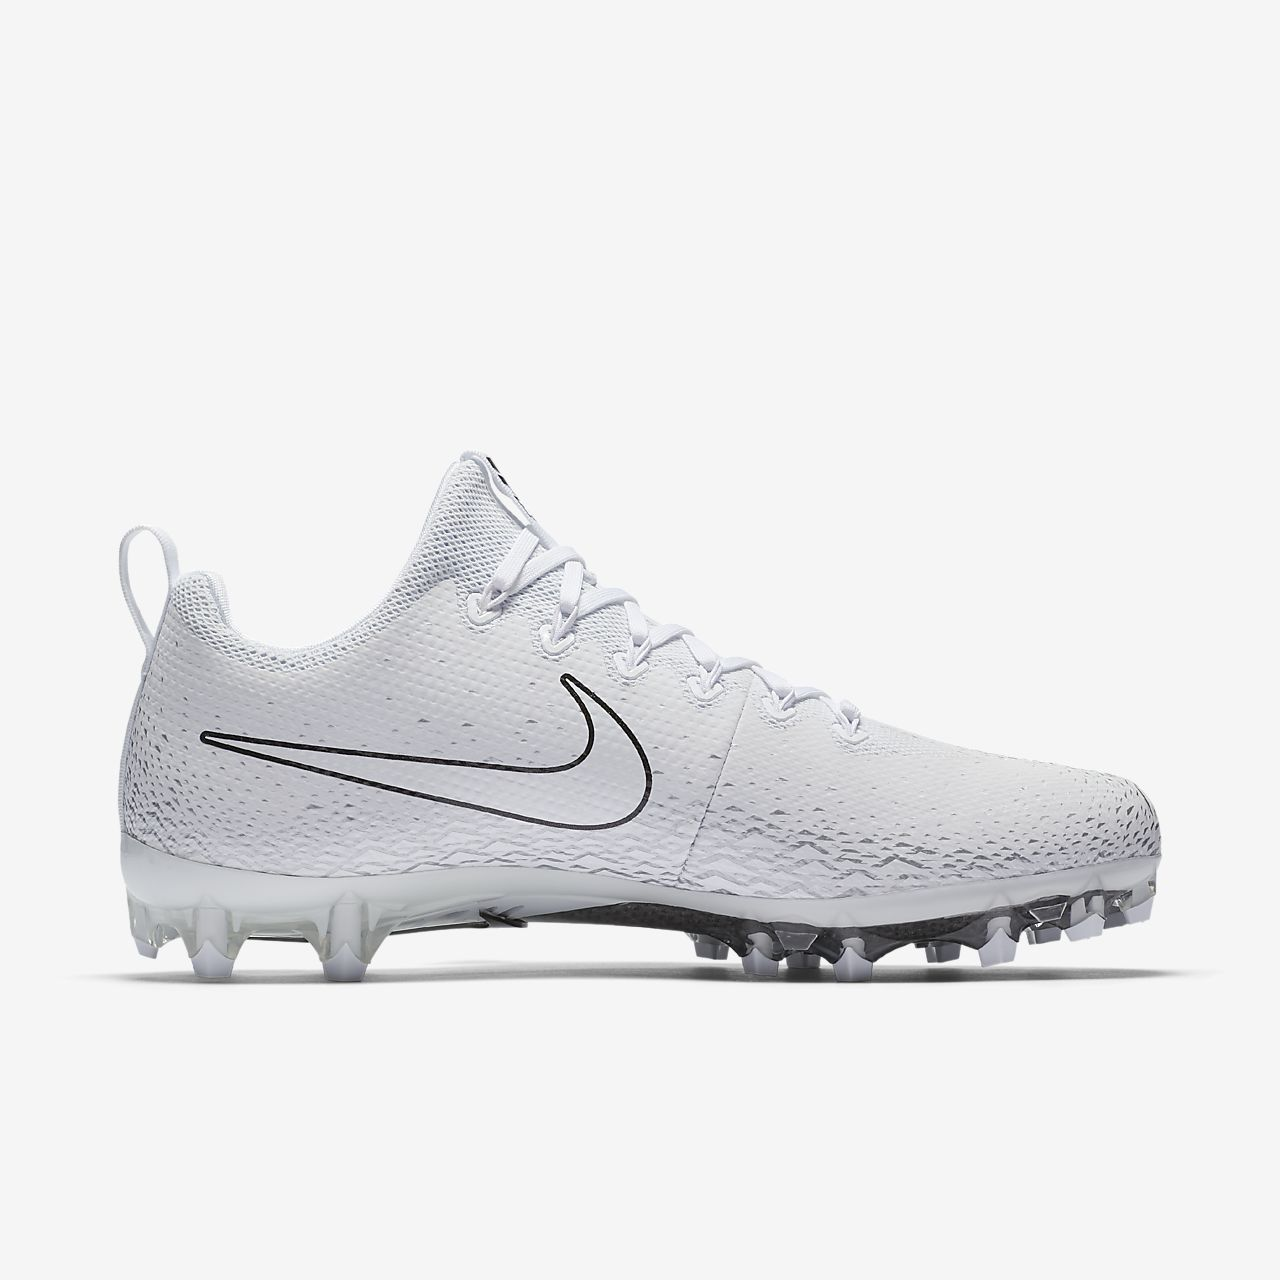 high top baseball cleats nike yellow cleats